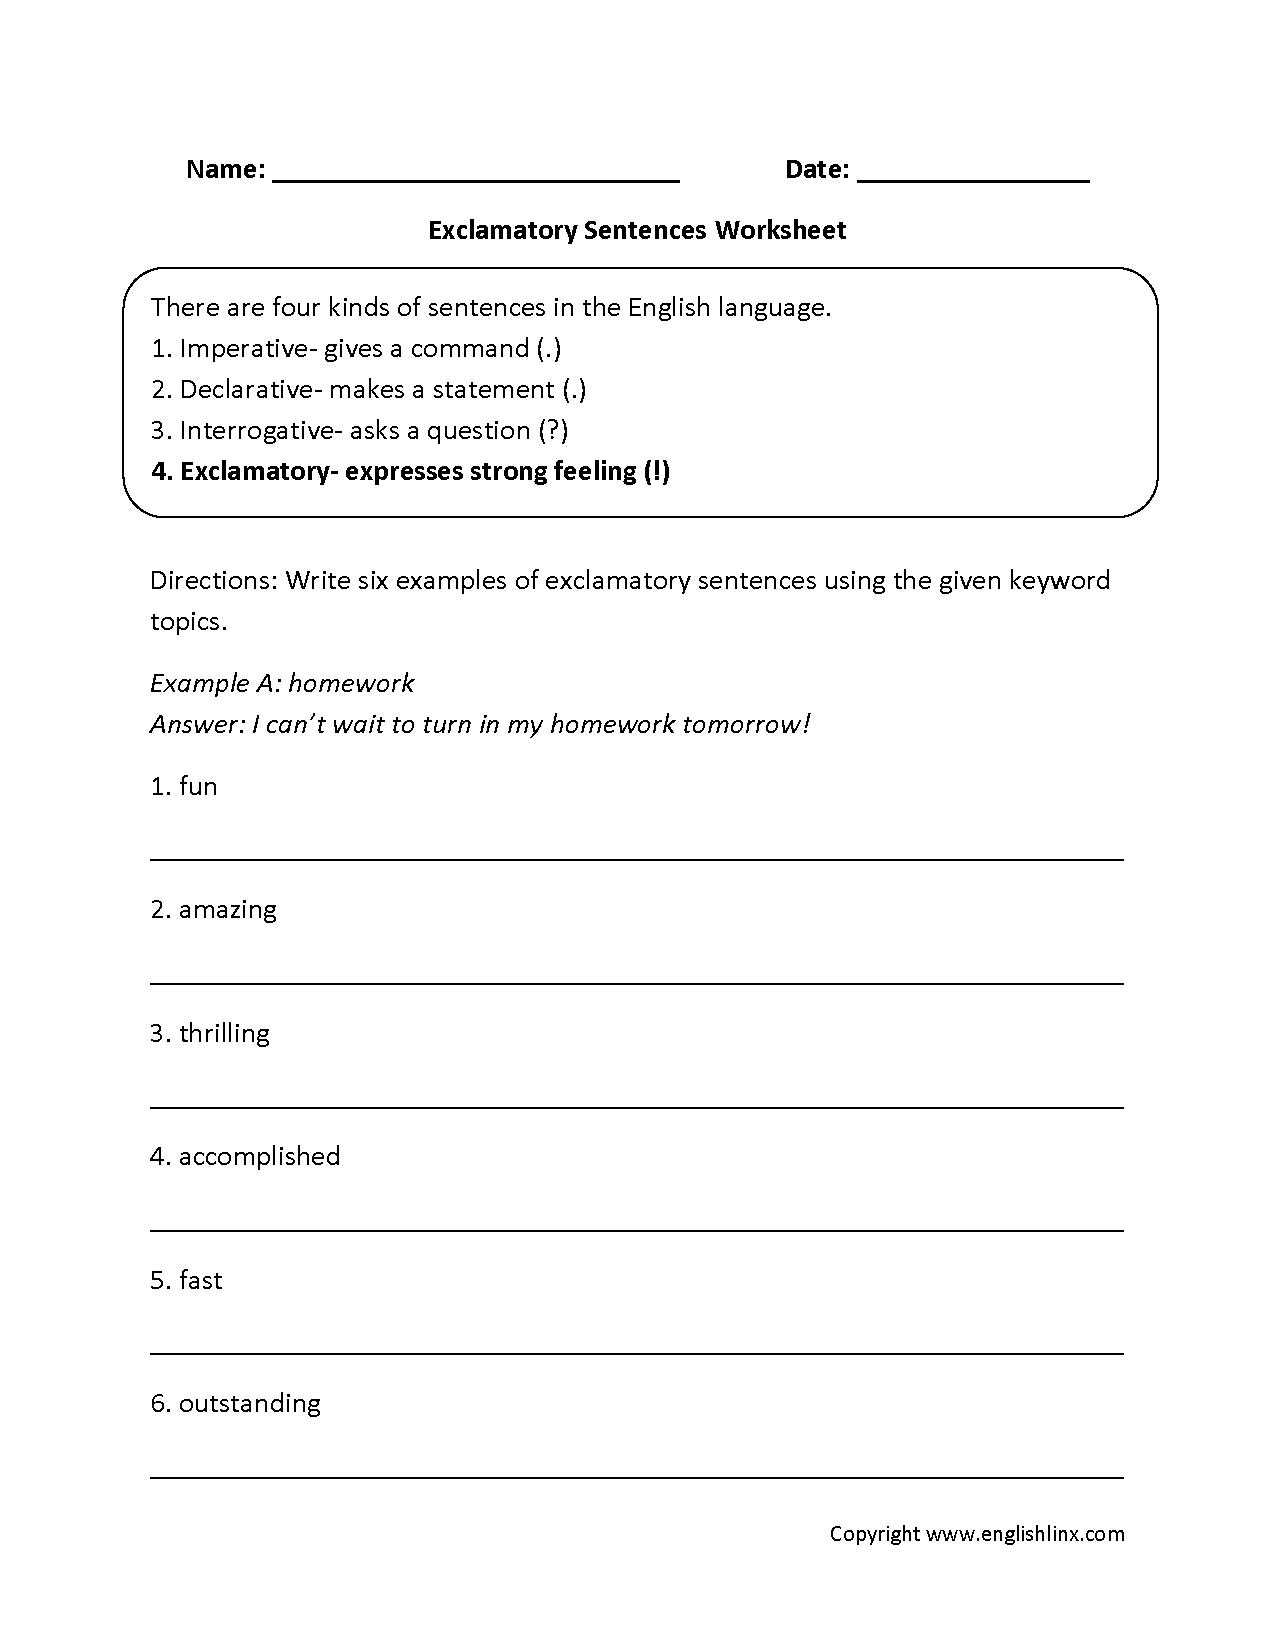 Worksheets Four Kinds Of Sentences Worksheets exclamatory types of sentences worksheets education language this is the section learning will help with writing there are four of